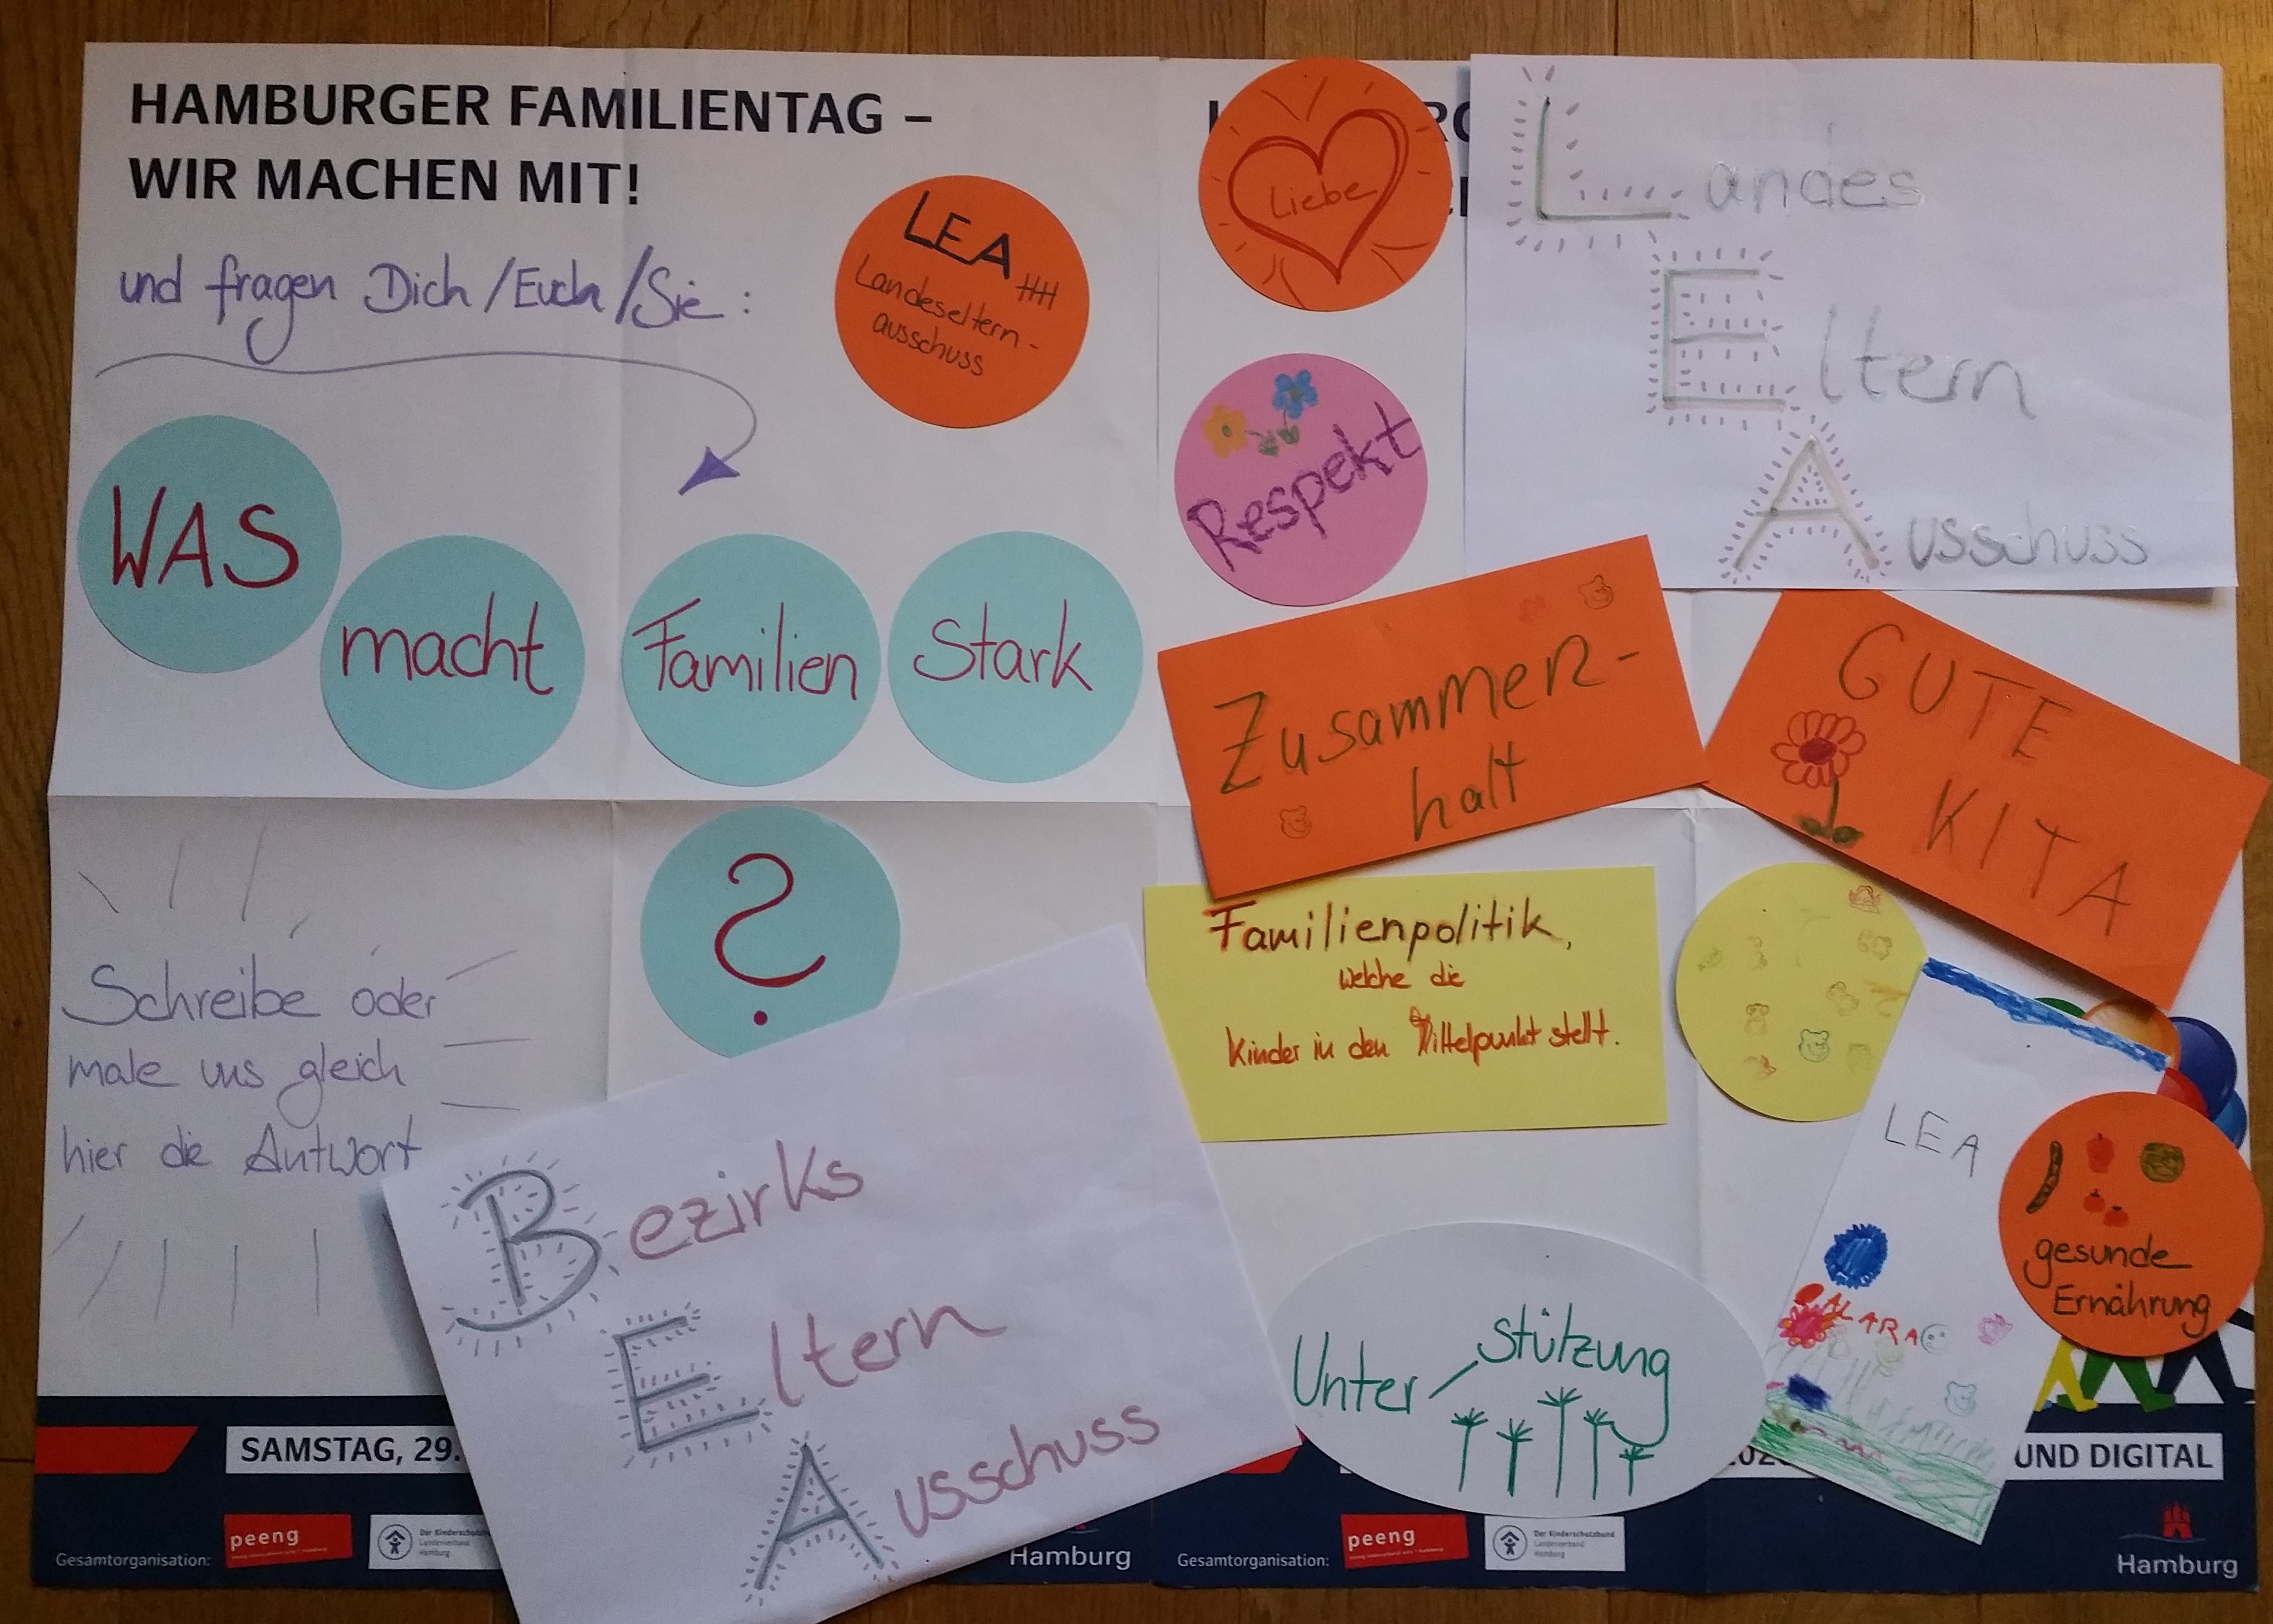 Familientag Collage 2020